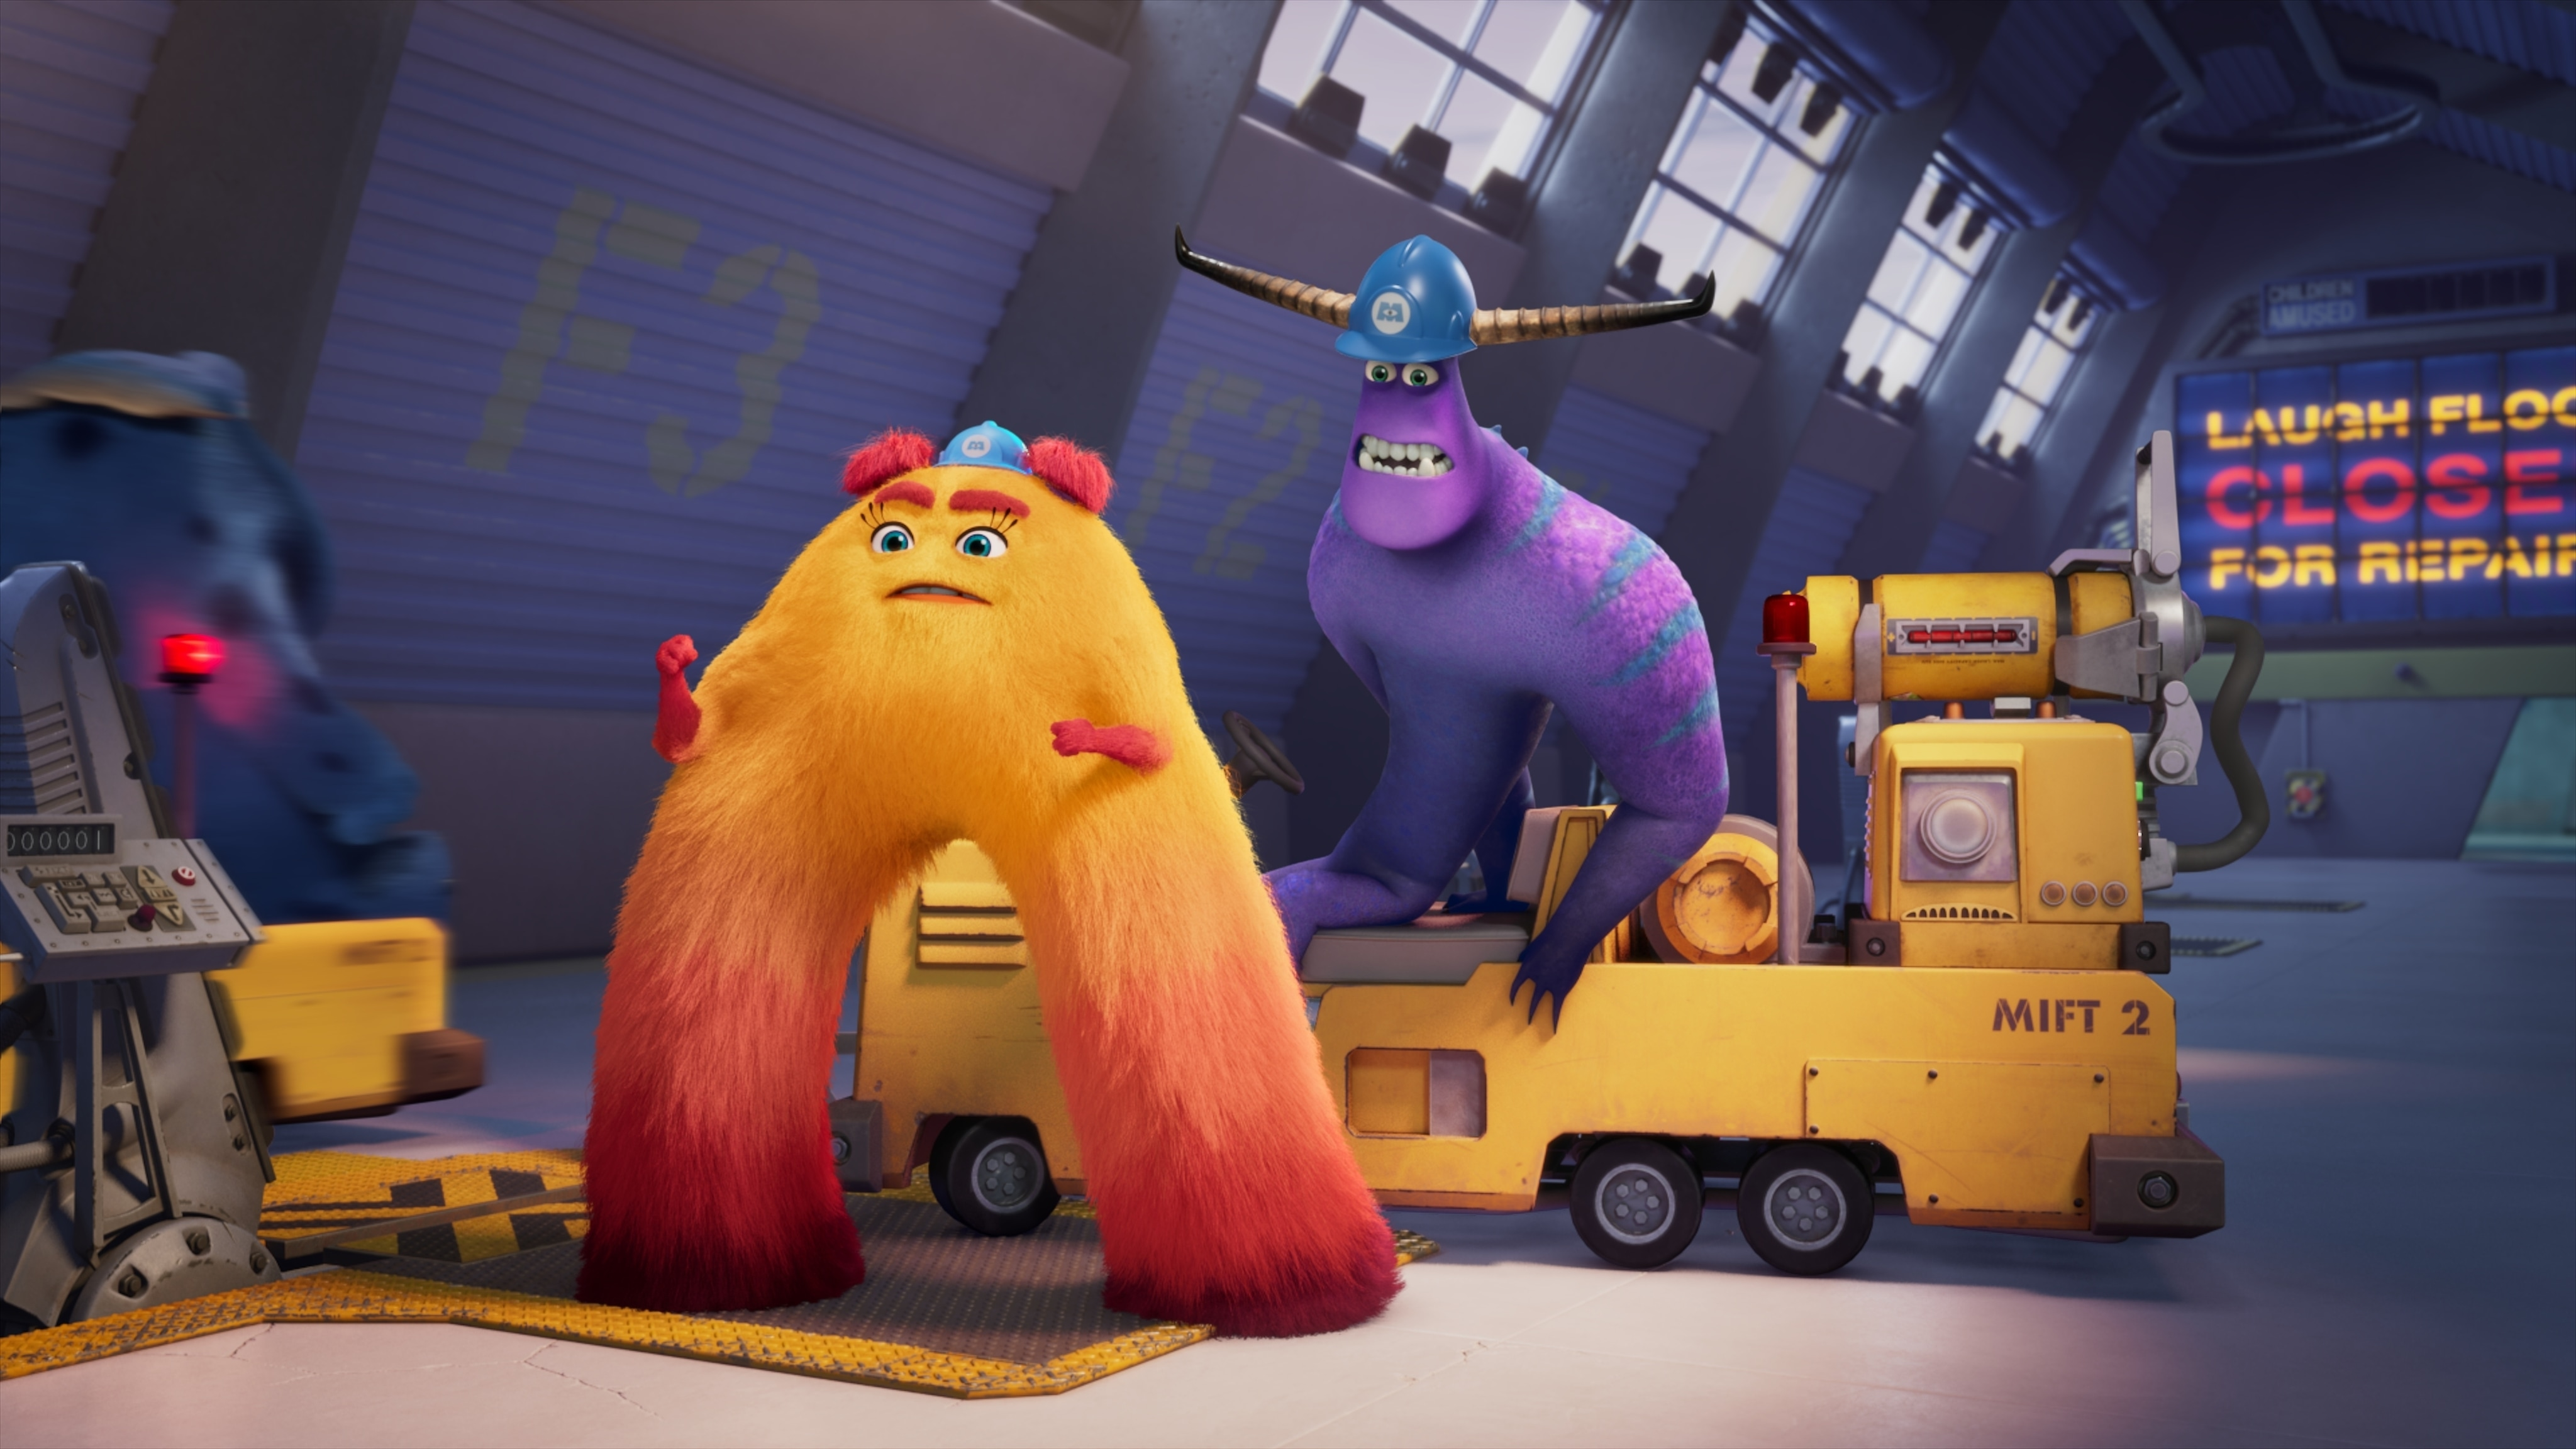 """MONSTERS AT WORK - """"Meet Mift"""" - When Tylor is initiated into MIFT during a bizarre ritual, he wants nothing more than to get away from his odd coworkers.  But when an emergency strikes Monsters, Inc., MIFT kicks into action and Tylor develops a hint of respect for the misfit team. (Disney) VAL, TYLOR"""